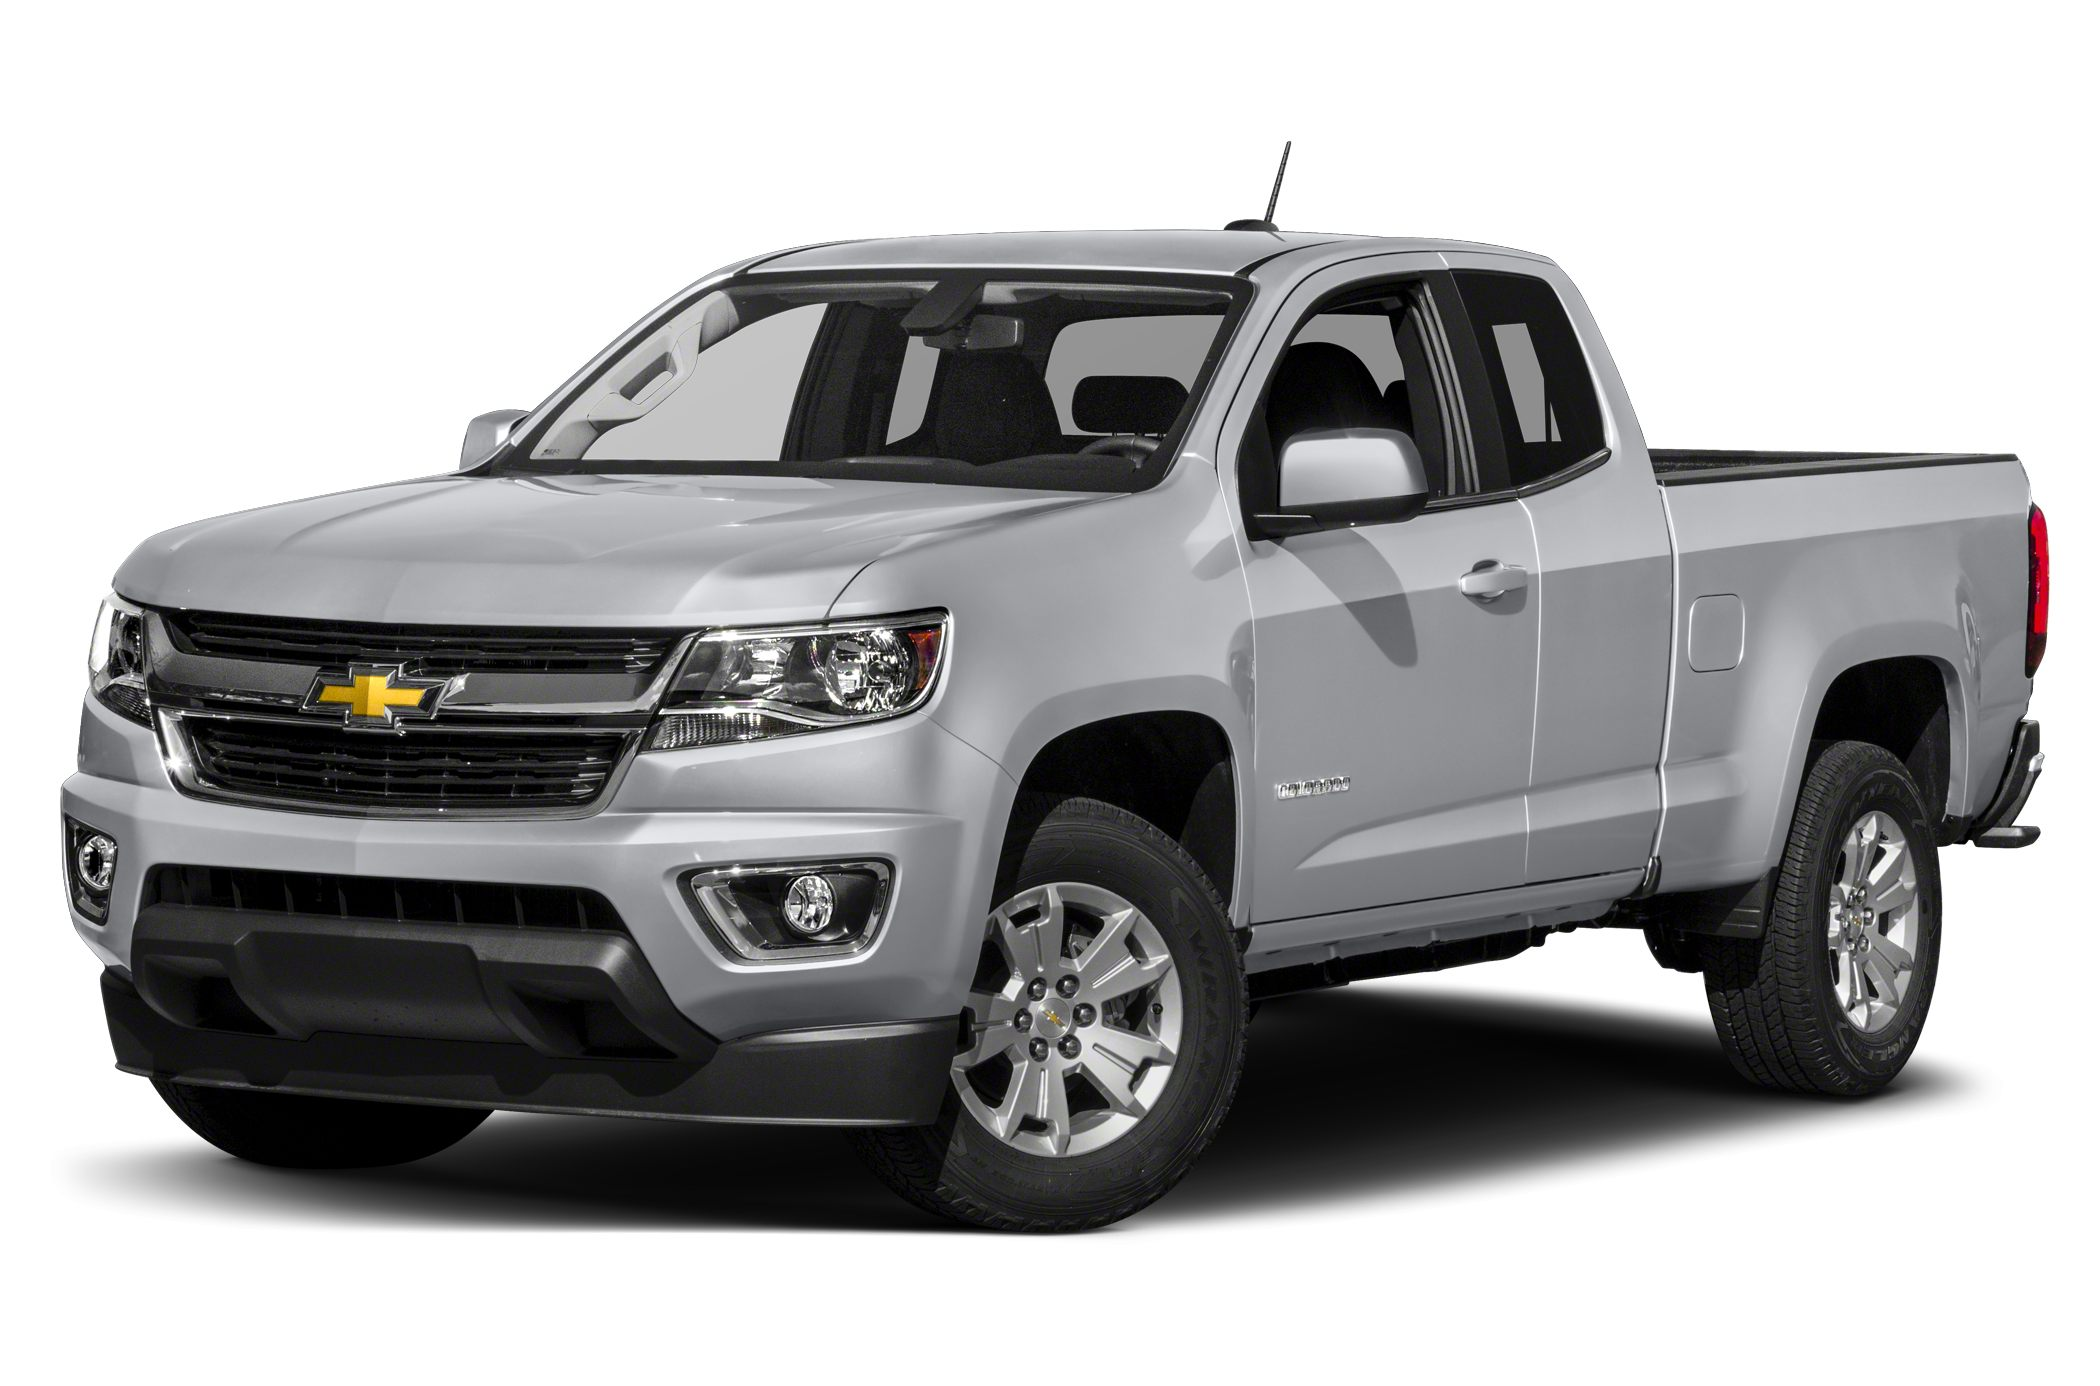 2018 Chevrolet Colorado LT 4x4 Extended Cab 6 ft box 128 3 in WB